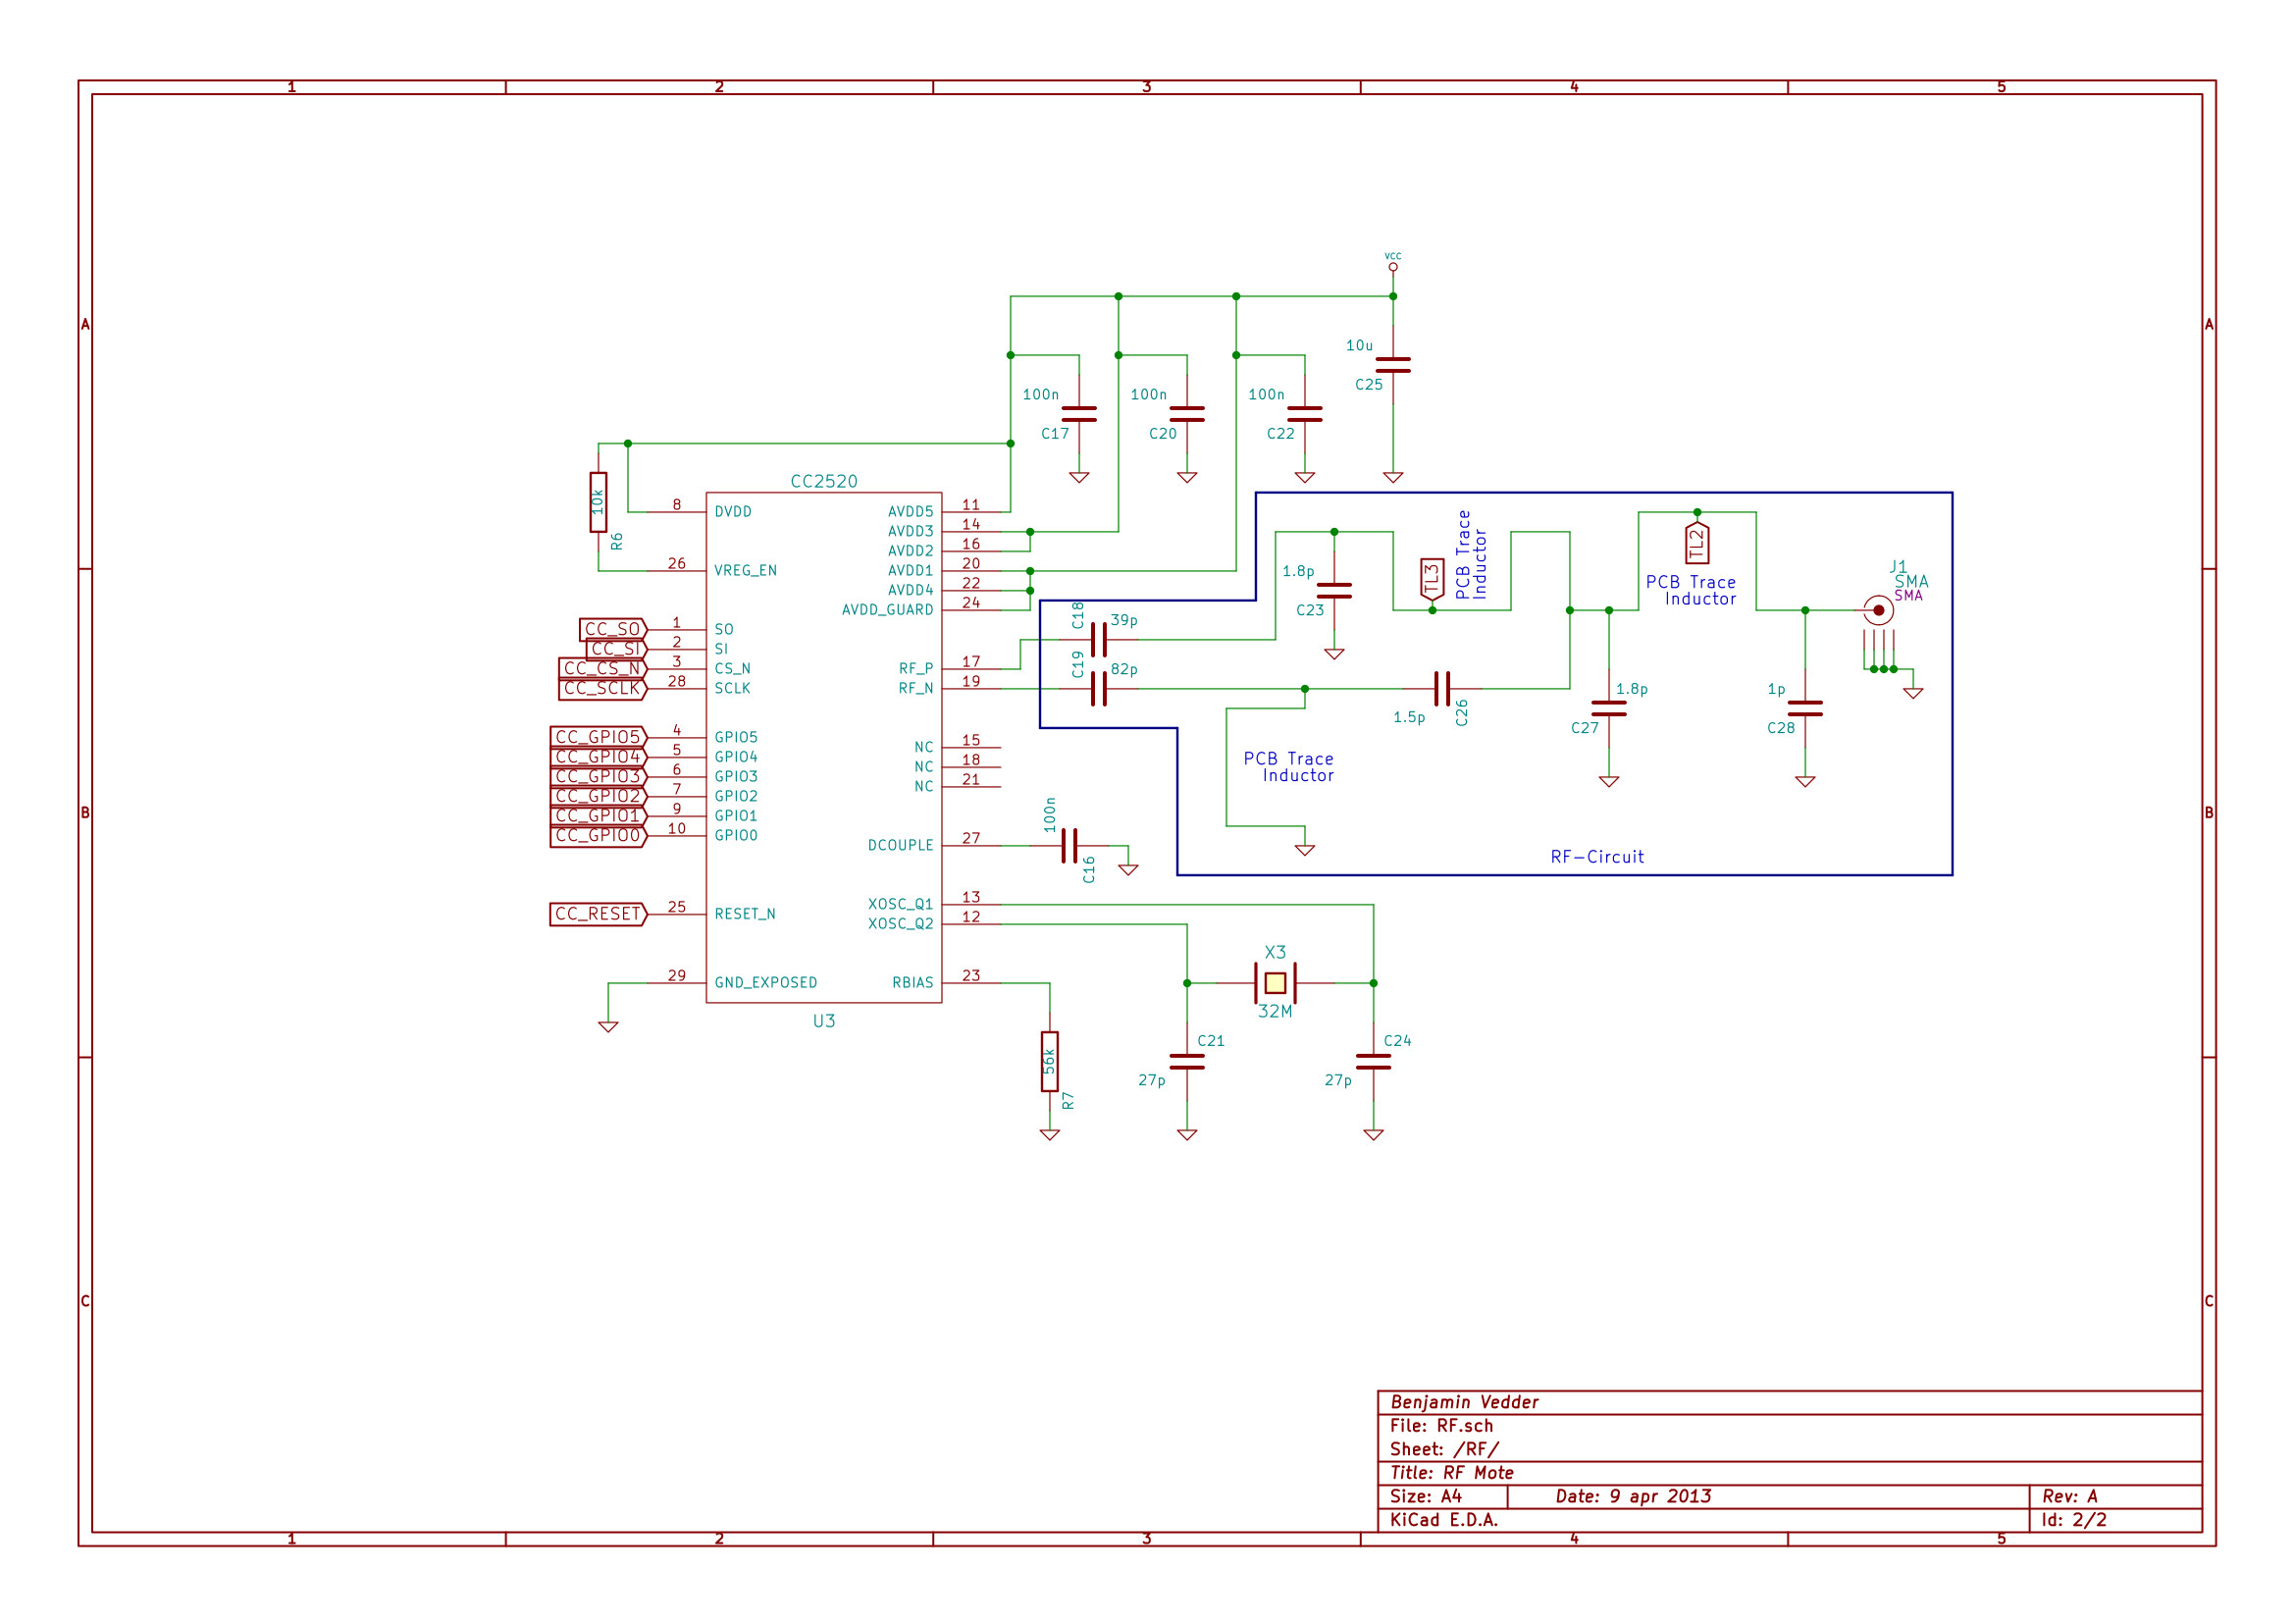 Cc2520 And Stm32 Rf Boards Benjamins Robotics Ve Also Been Looking For The Schematics Gerber Files But They Sch P2 Kicad Are Here